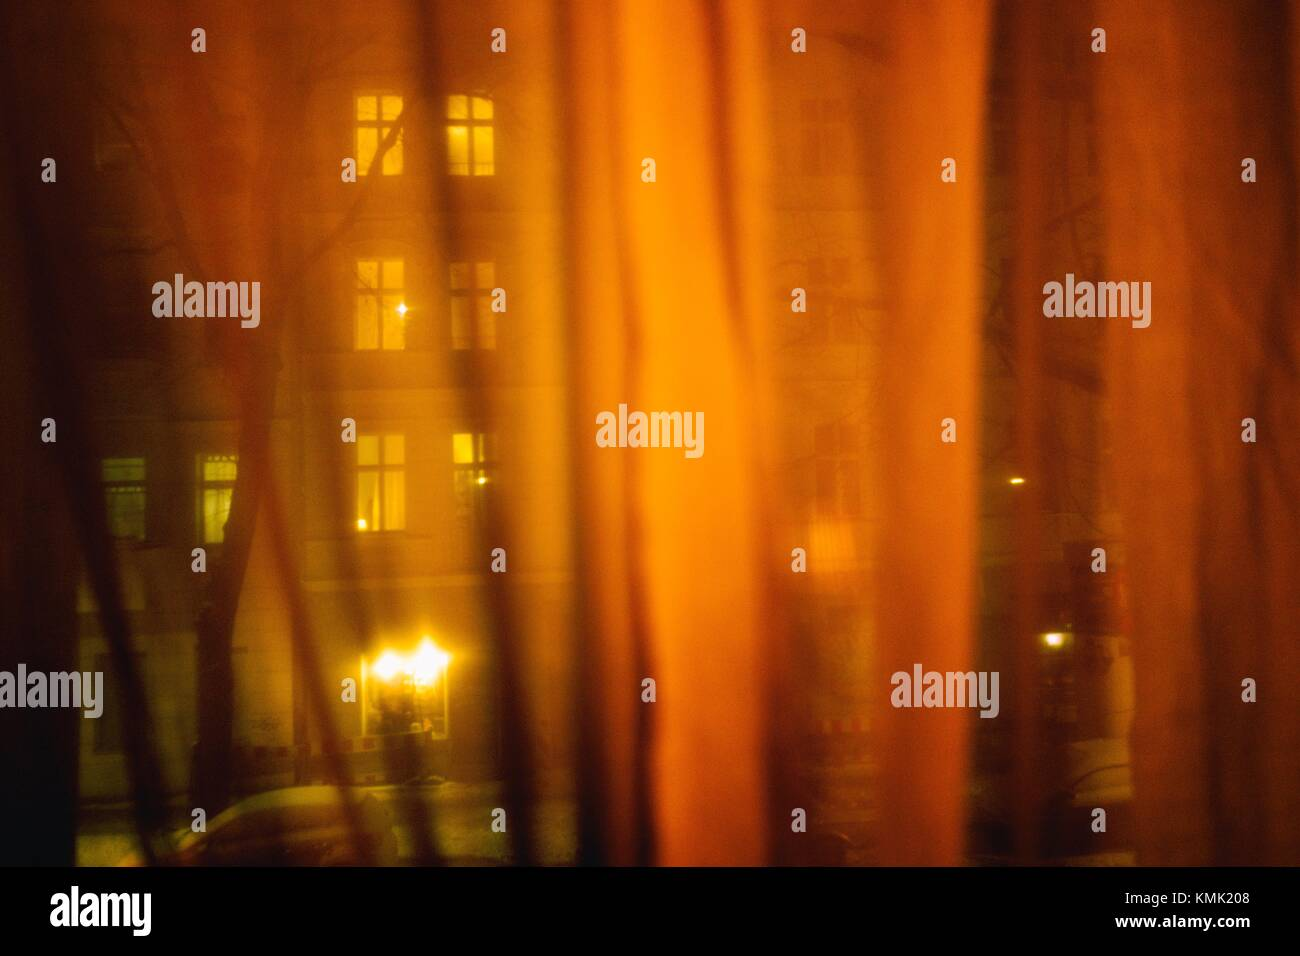 Residential building. View through curtain. Berlin, Germany - Stock Image